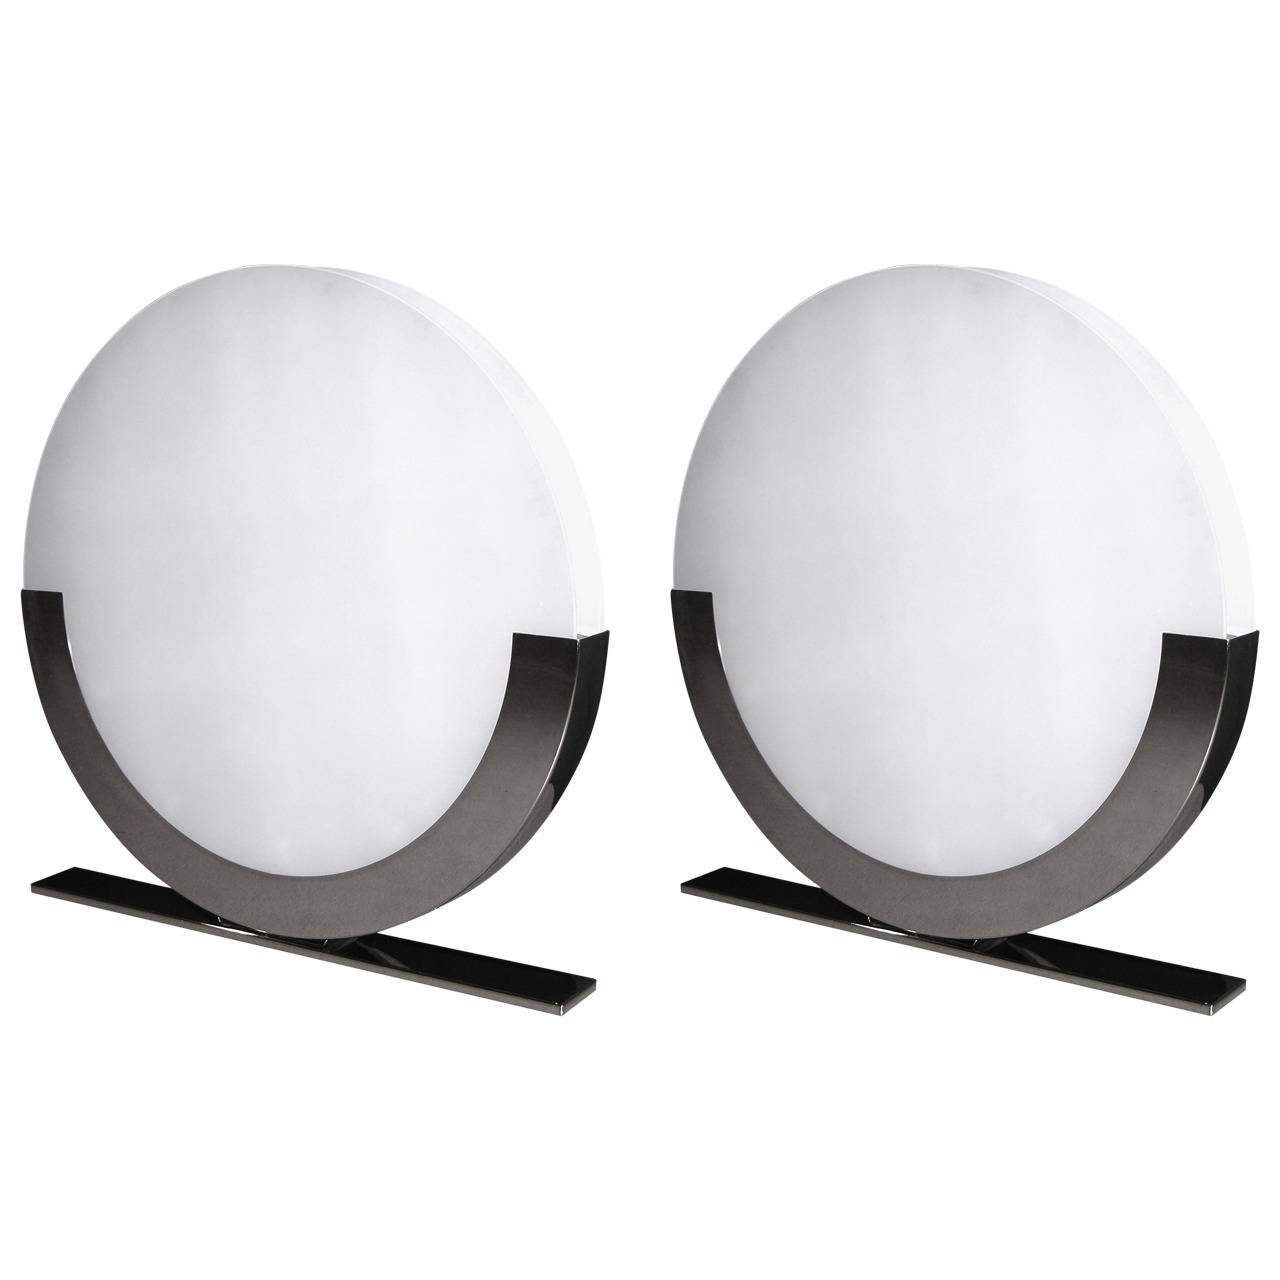 Monumental Italian Design Pair Of White And Chrome Round Floor Or Table  Lamps 1